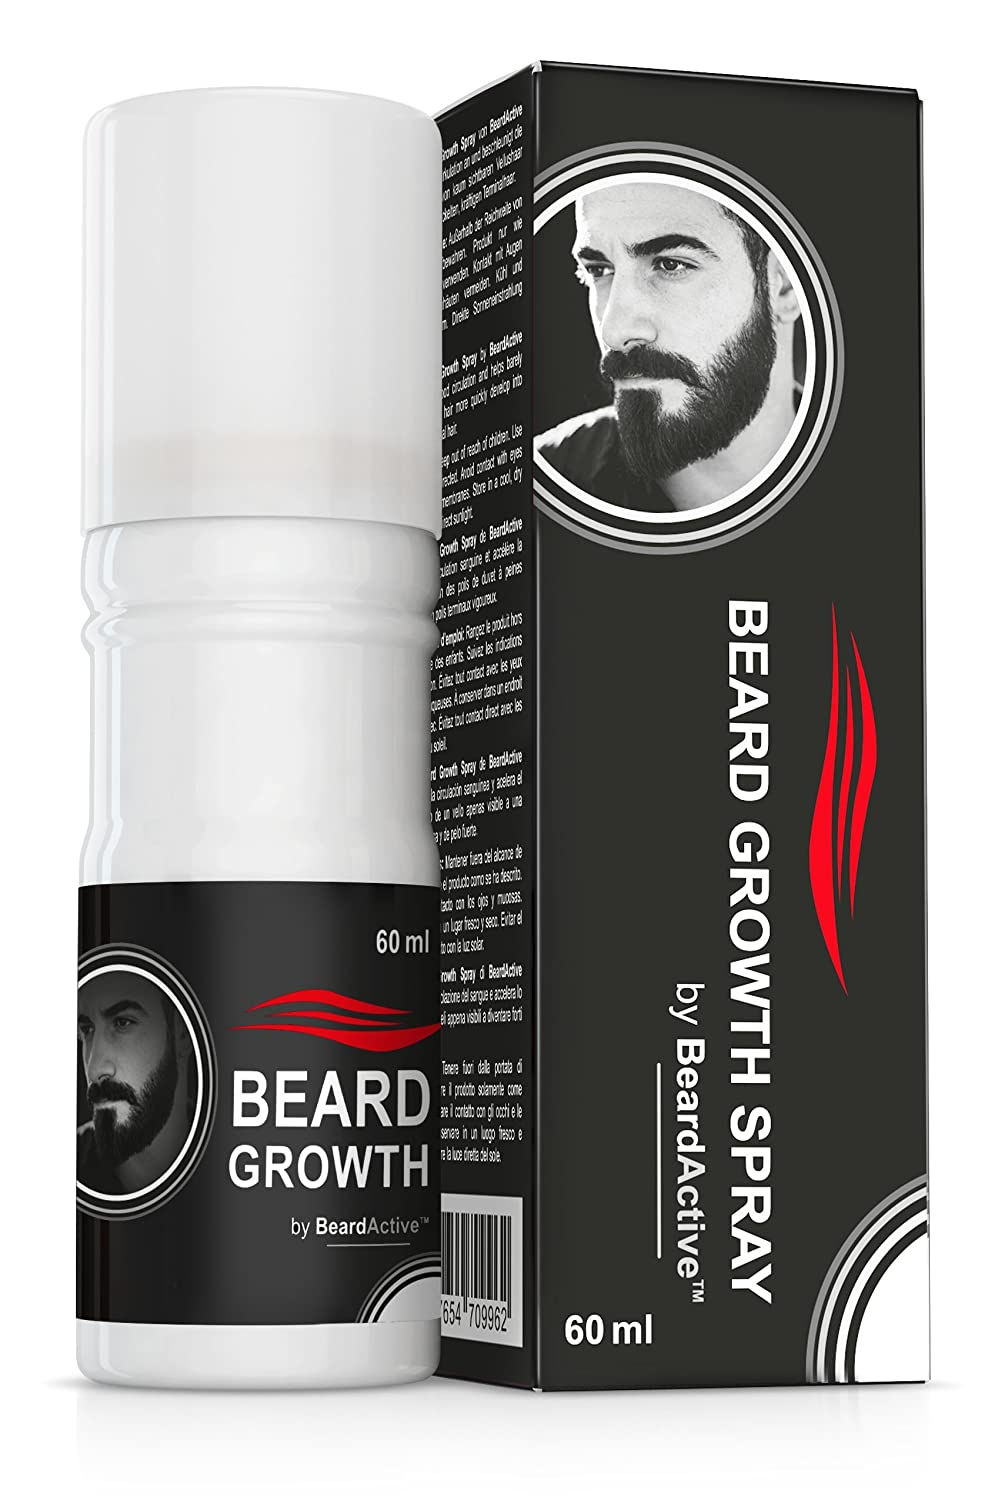 Beard Growth Spray® - The Solution for the Perfect Beard - 100 % Natural Formula - Facial Hair Support S&S Ges.b.R.